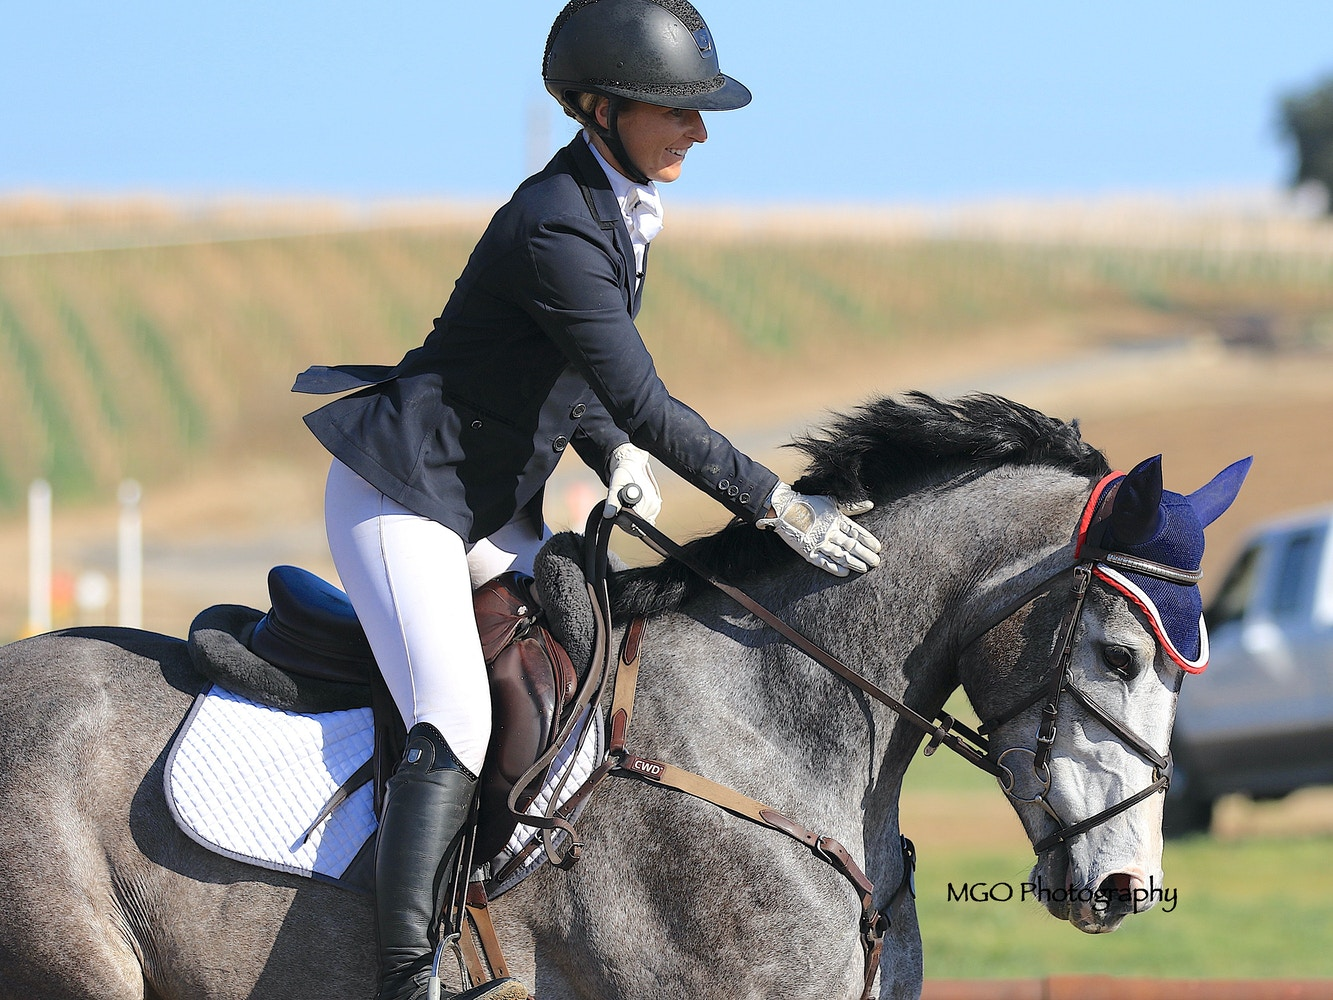 Featured Rider: Megan Sykes